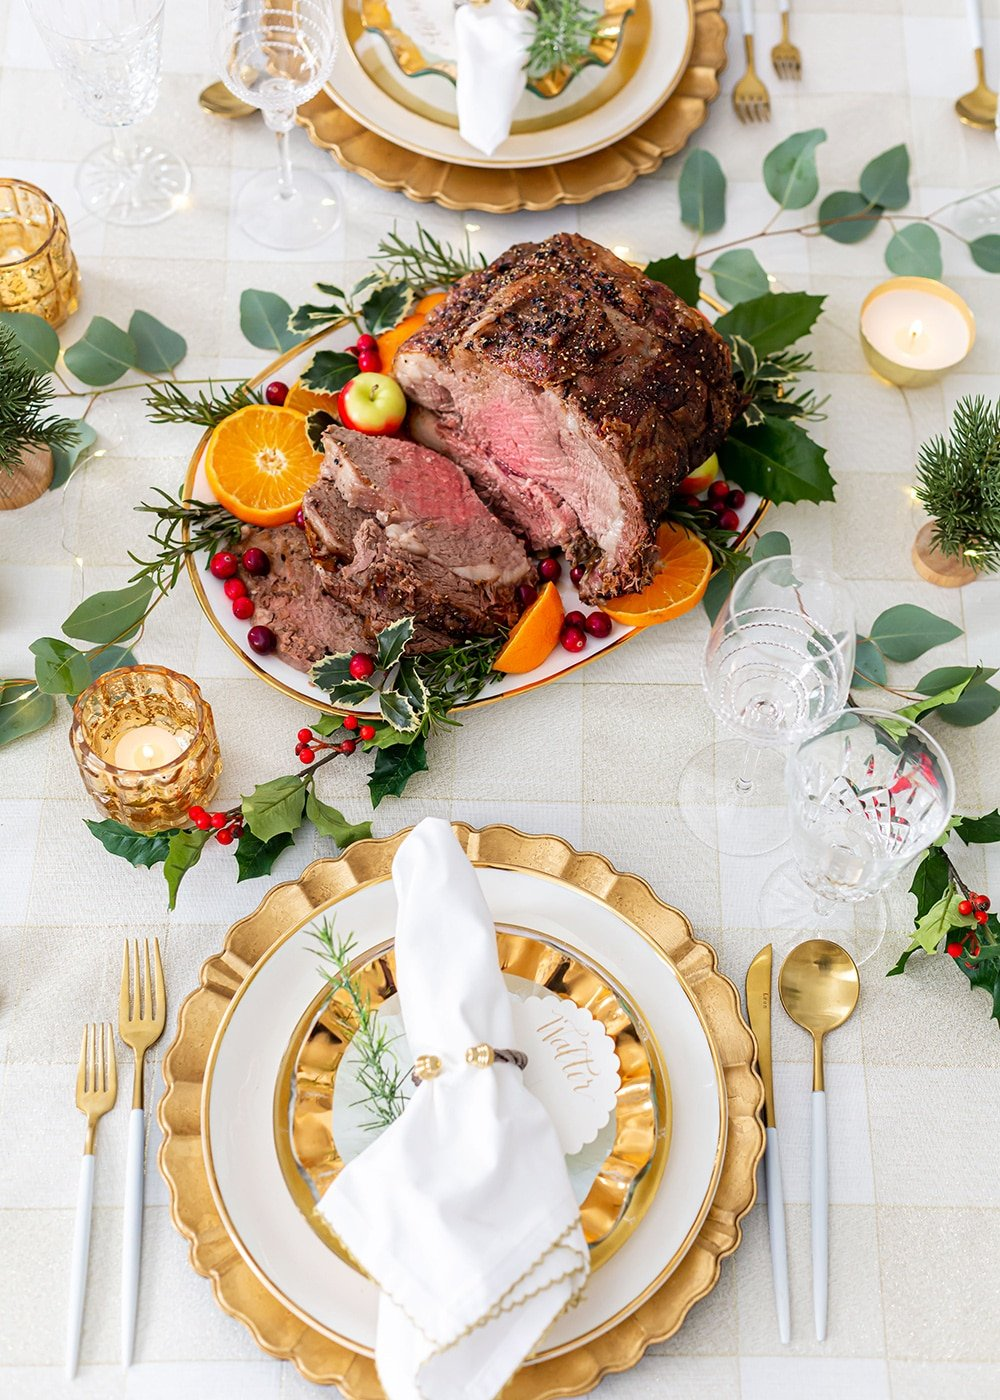 Tips for Entertaining |Serving a Holiday Beef Roast